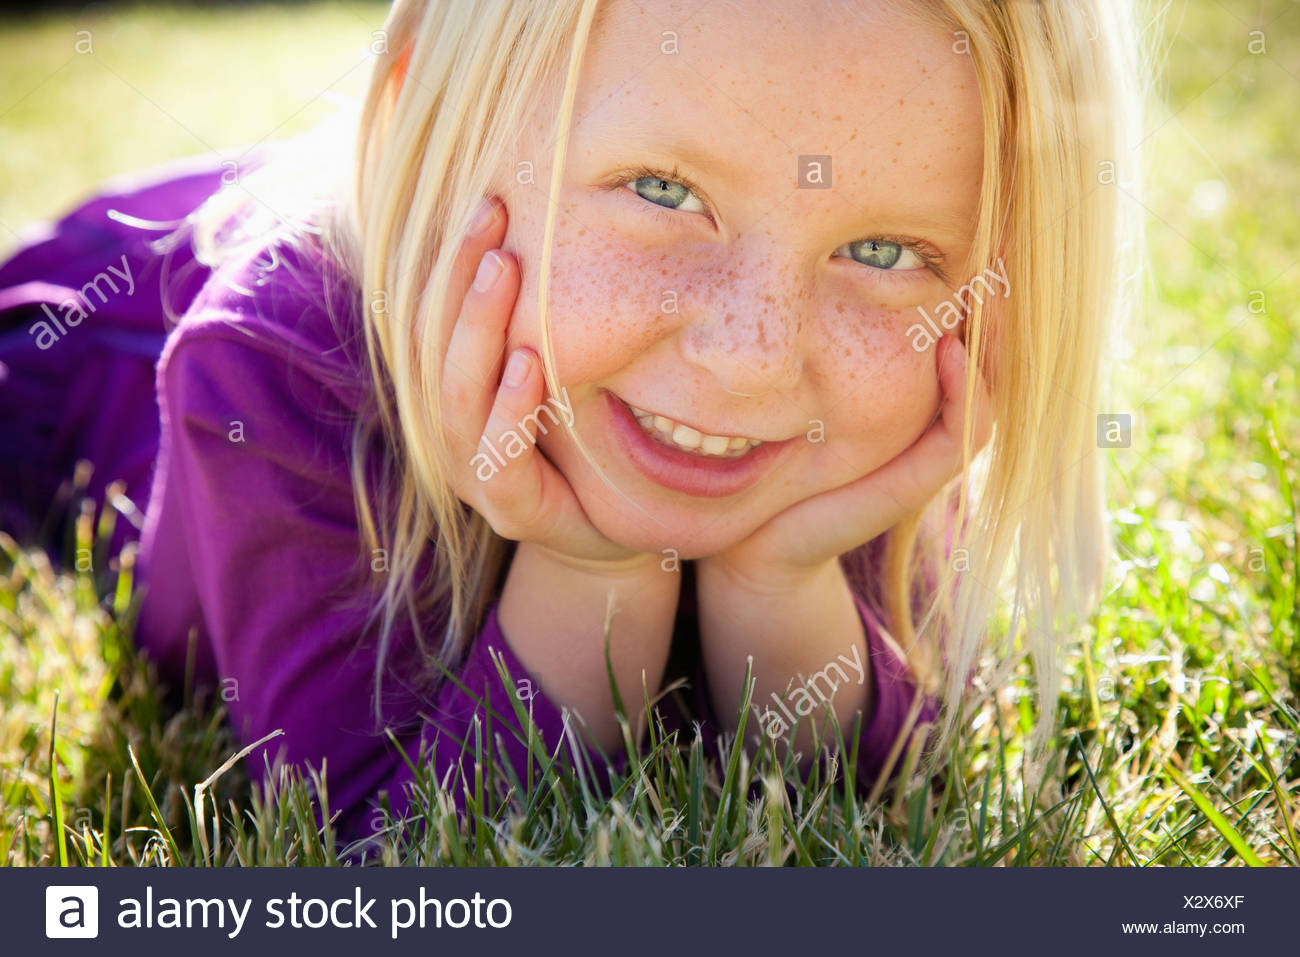 A young girl lying on the grass on her front with her chin resting on her hands. Laughing. Close up. Stock Photo